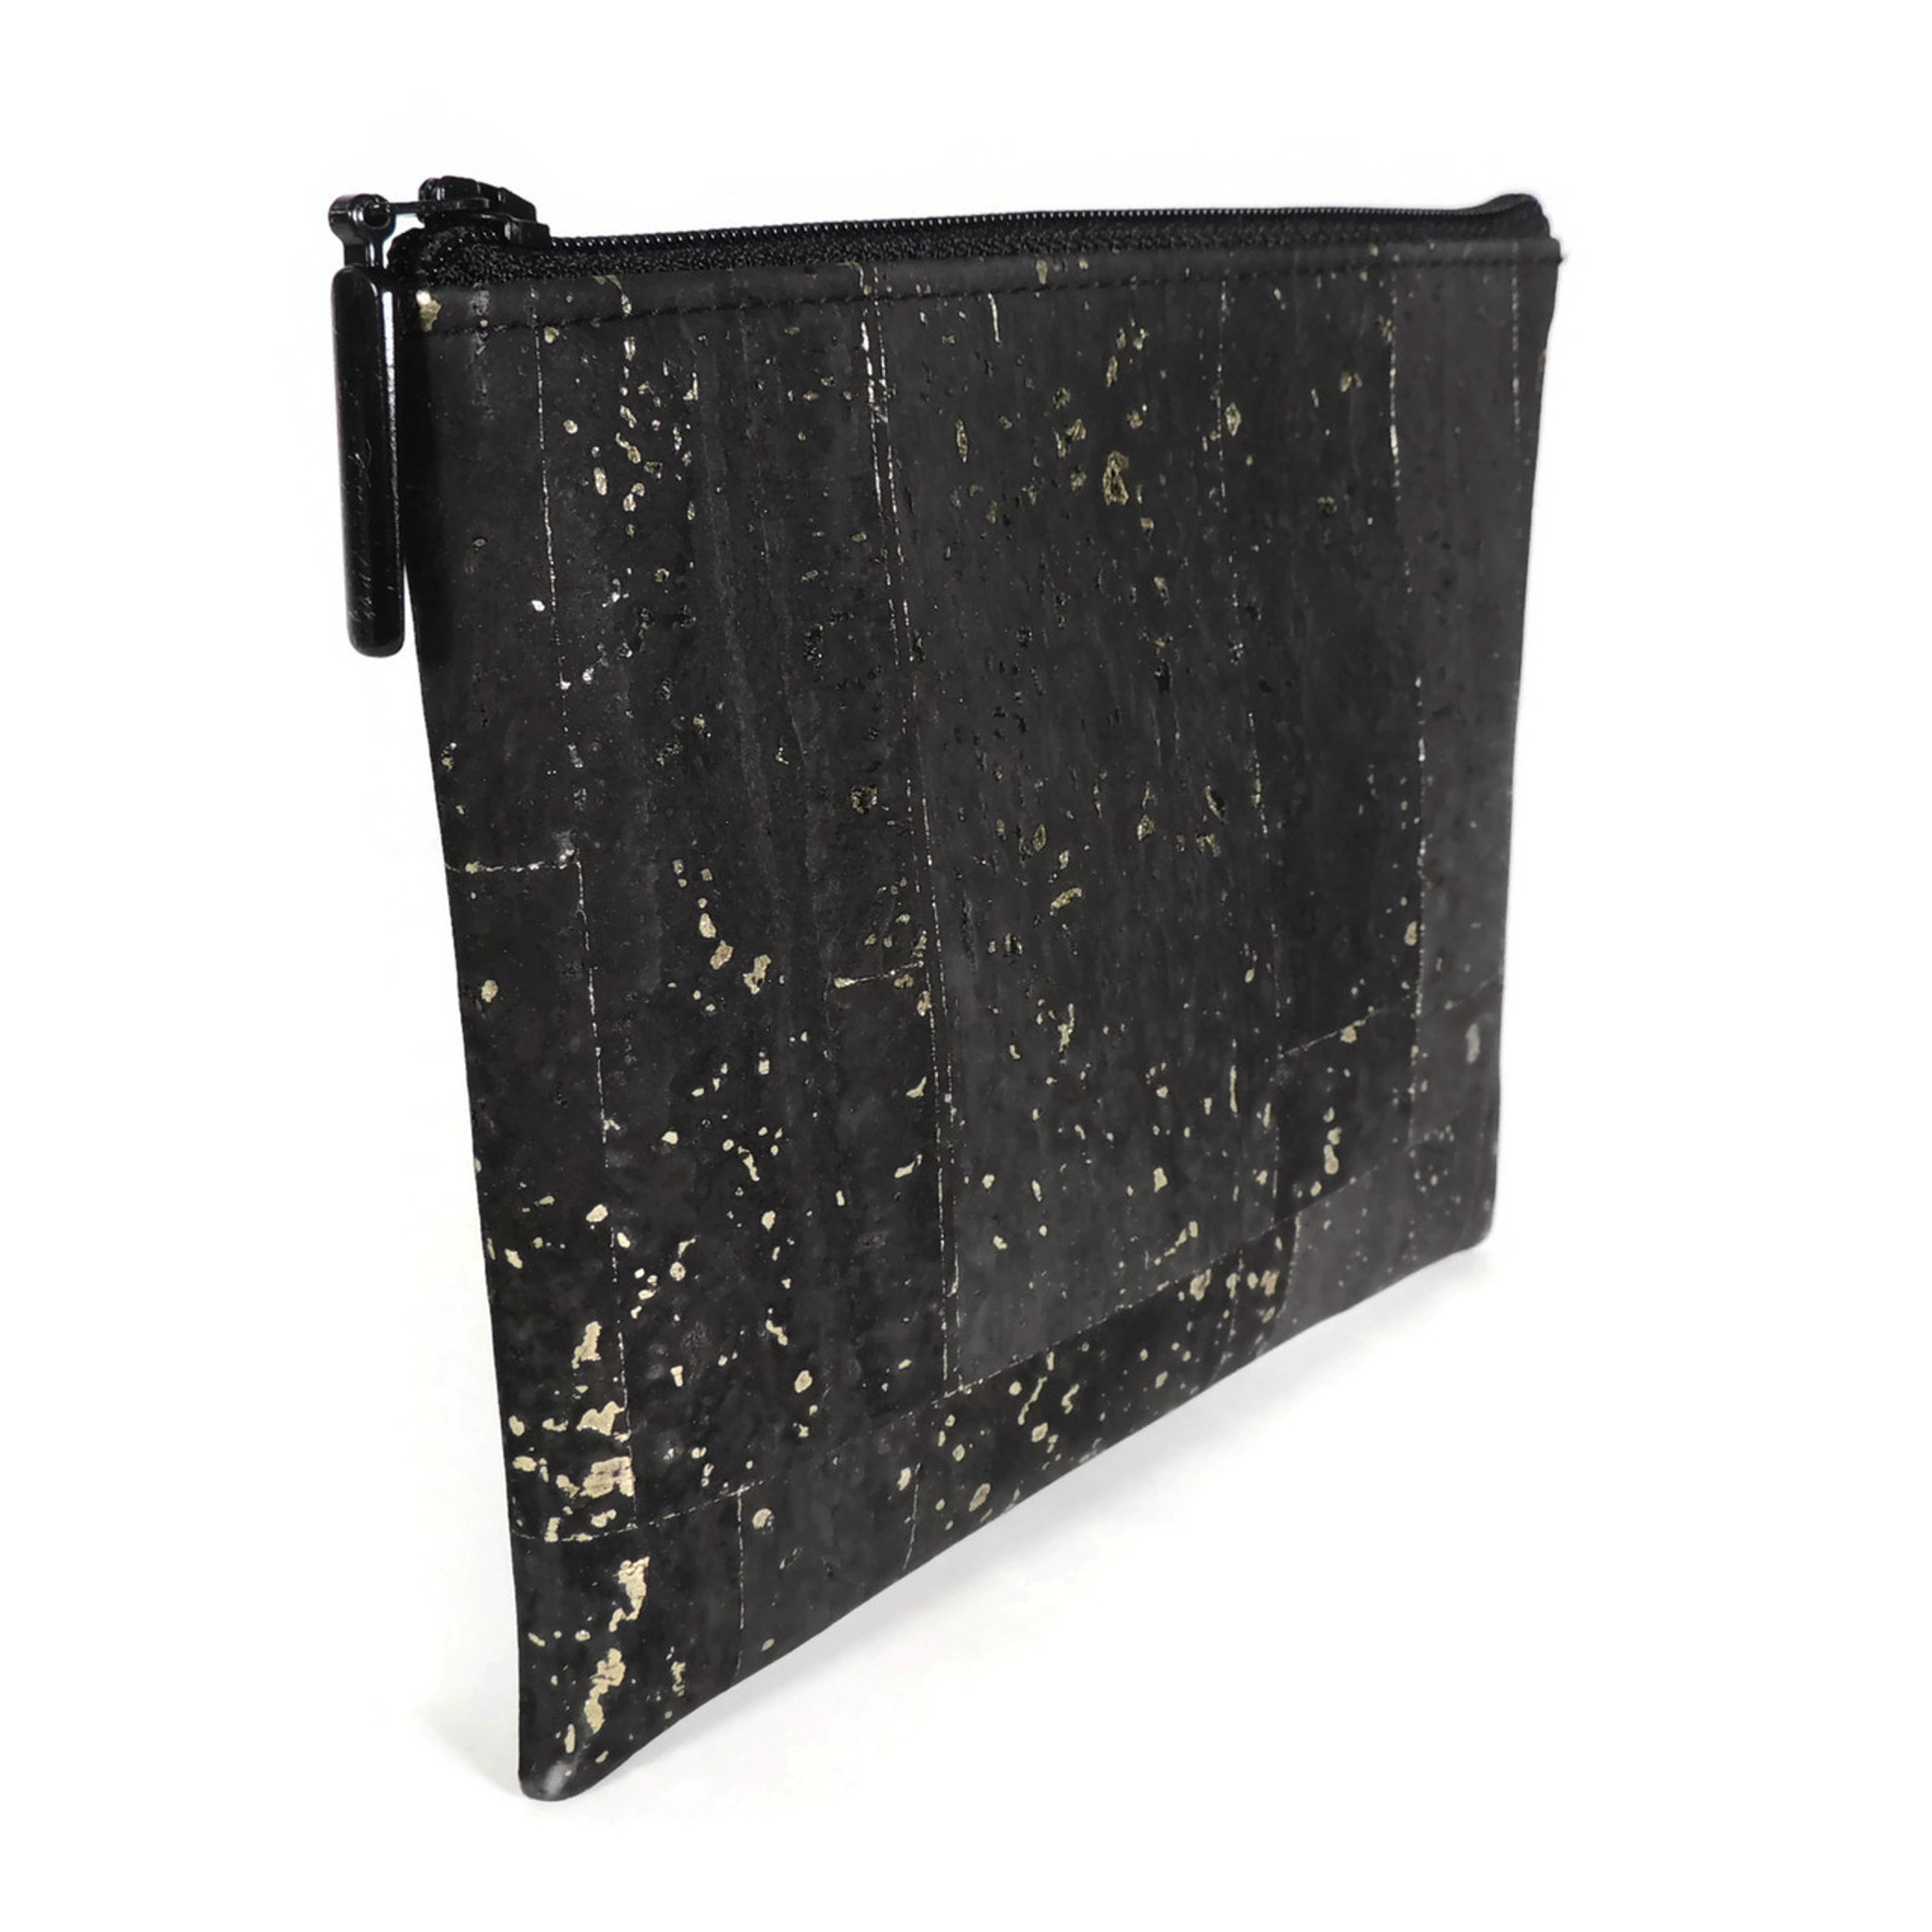 Pouch in Black and Gold Cork